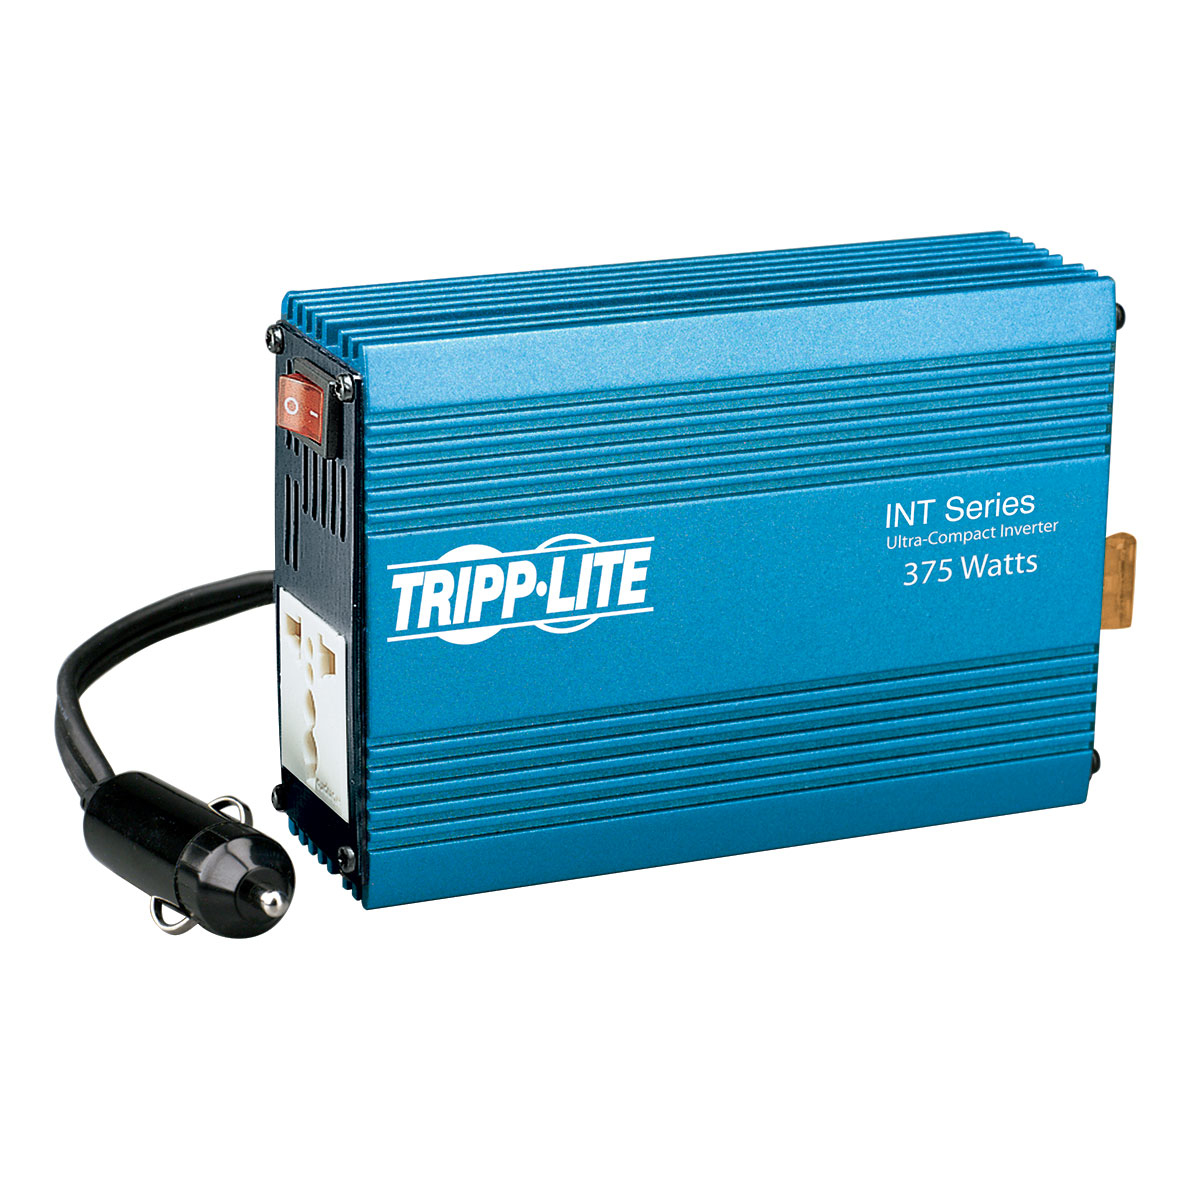 Power Inverter 12vdc To 230vac 1universal Global Outlet 375watts